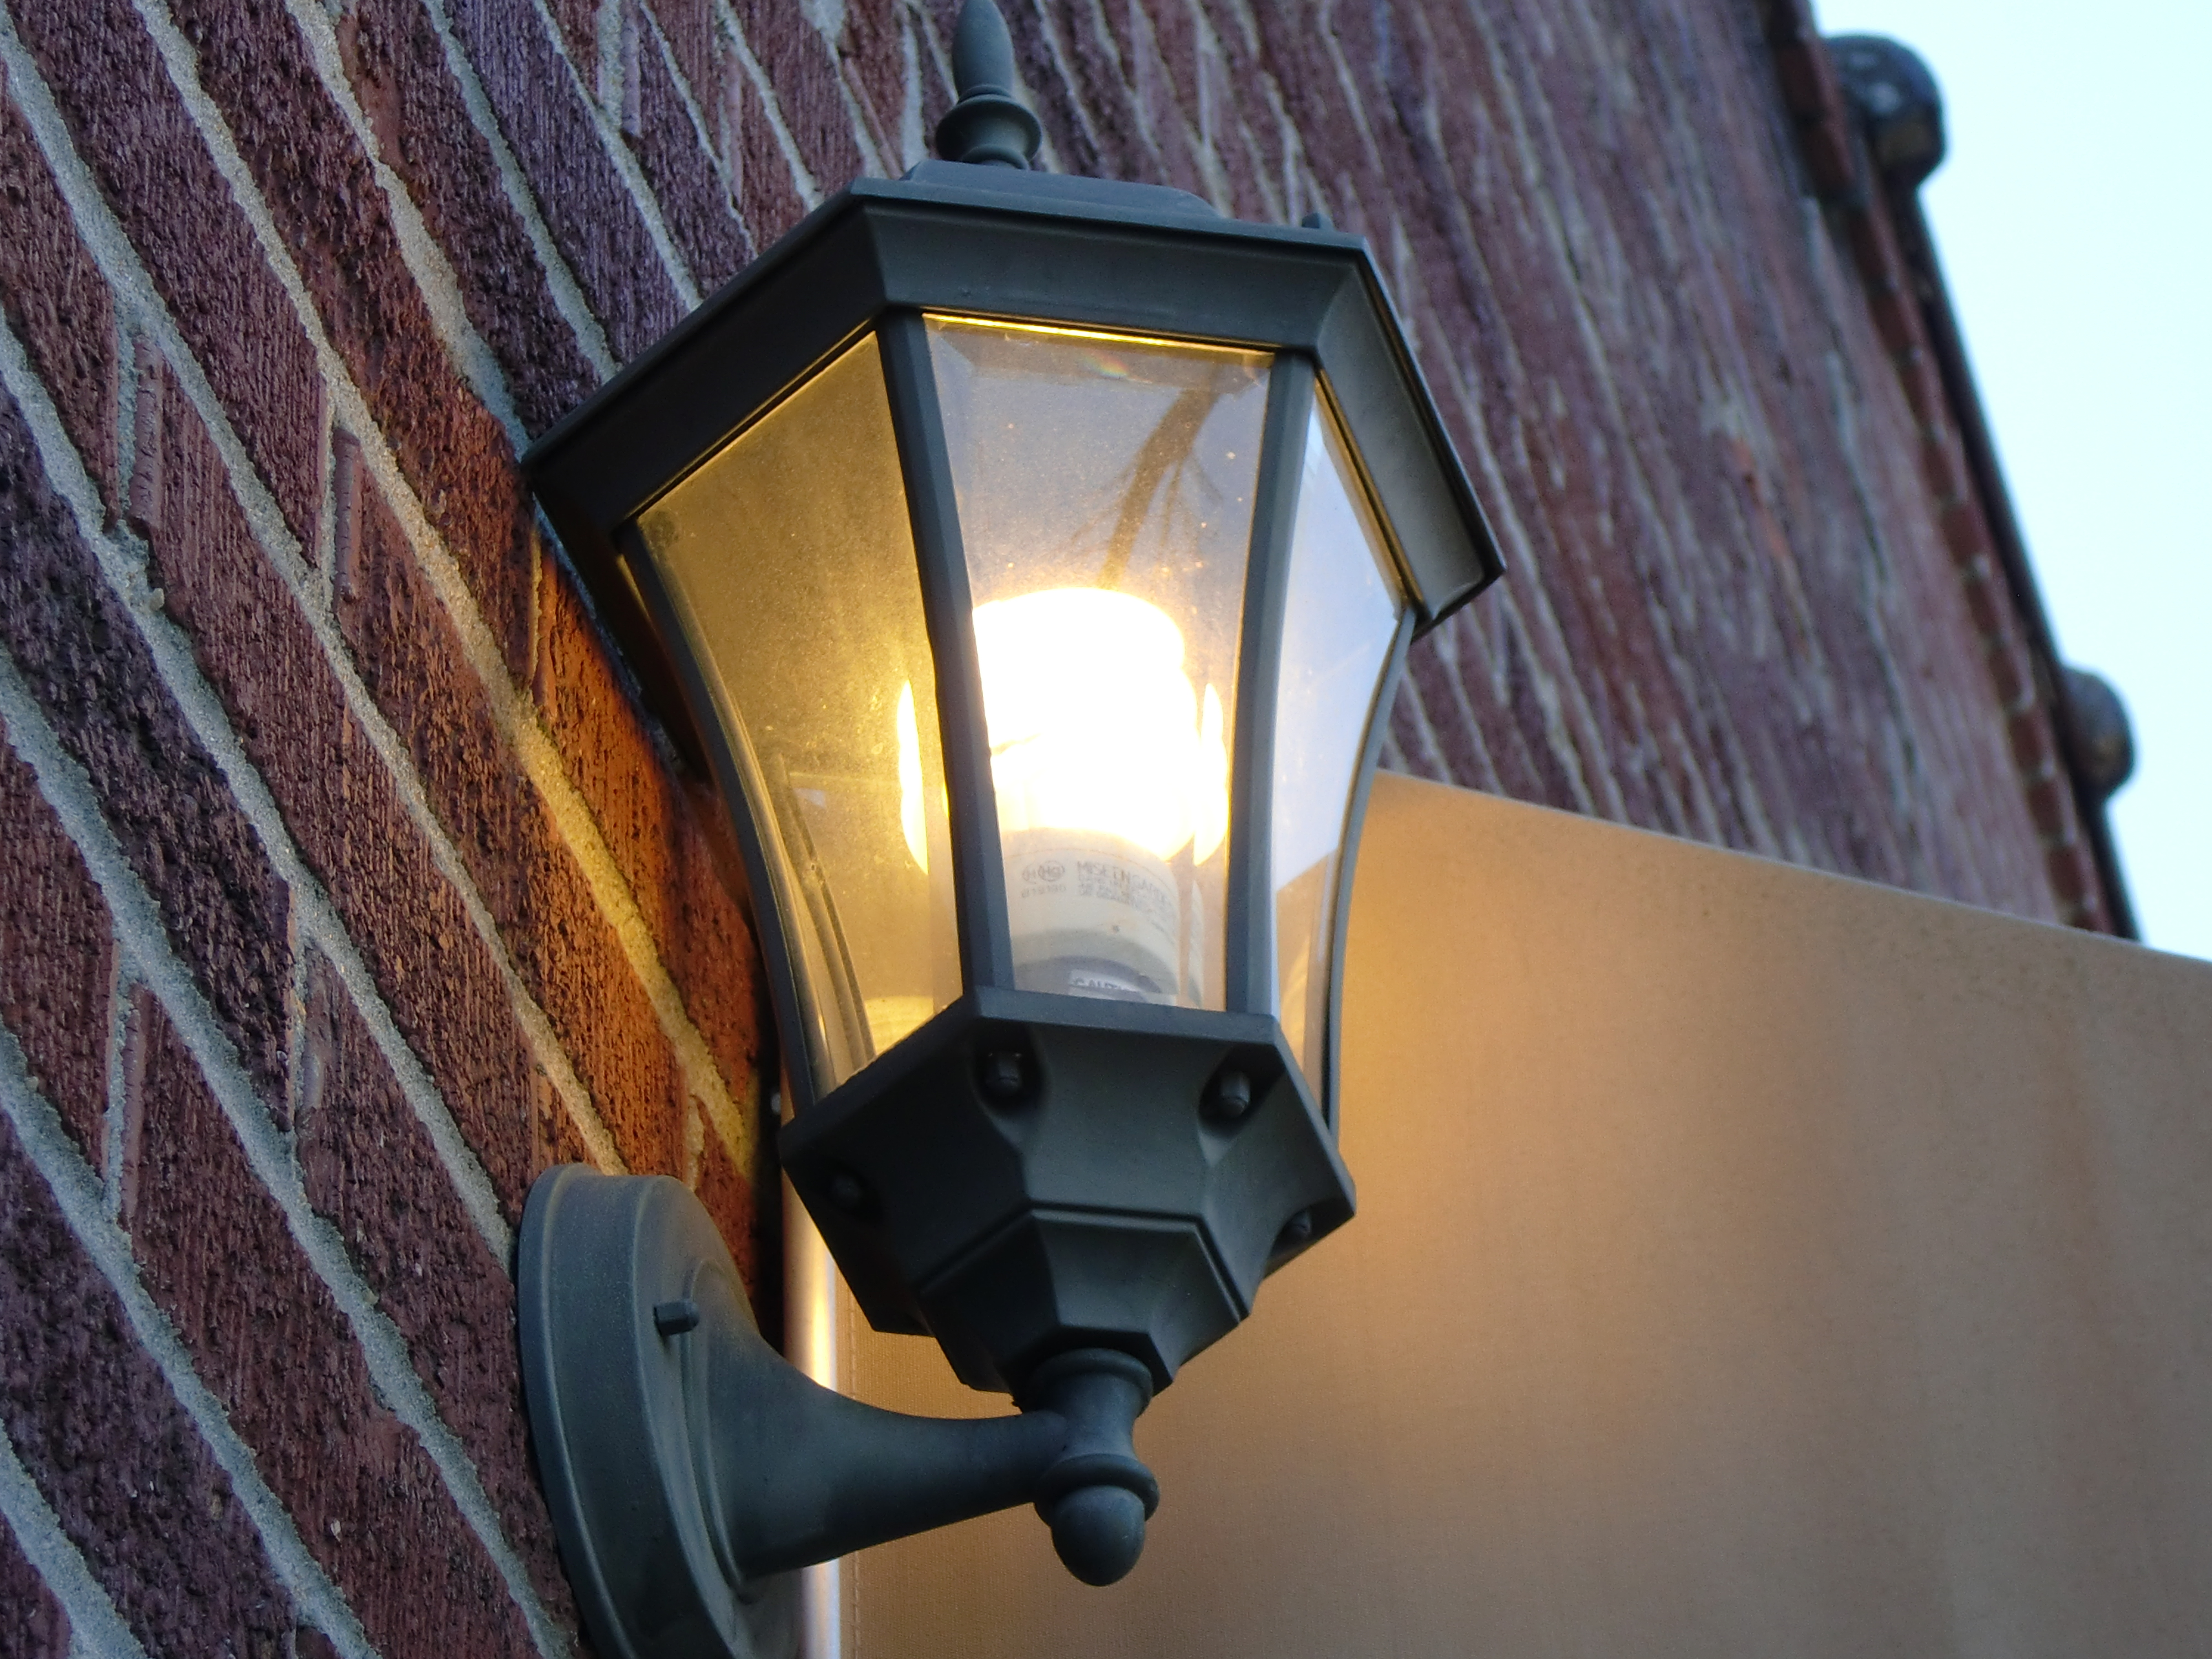 File:A CFL Light Bulb on a wall in a black lantern in South Carolina ...